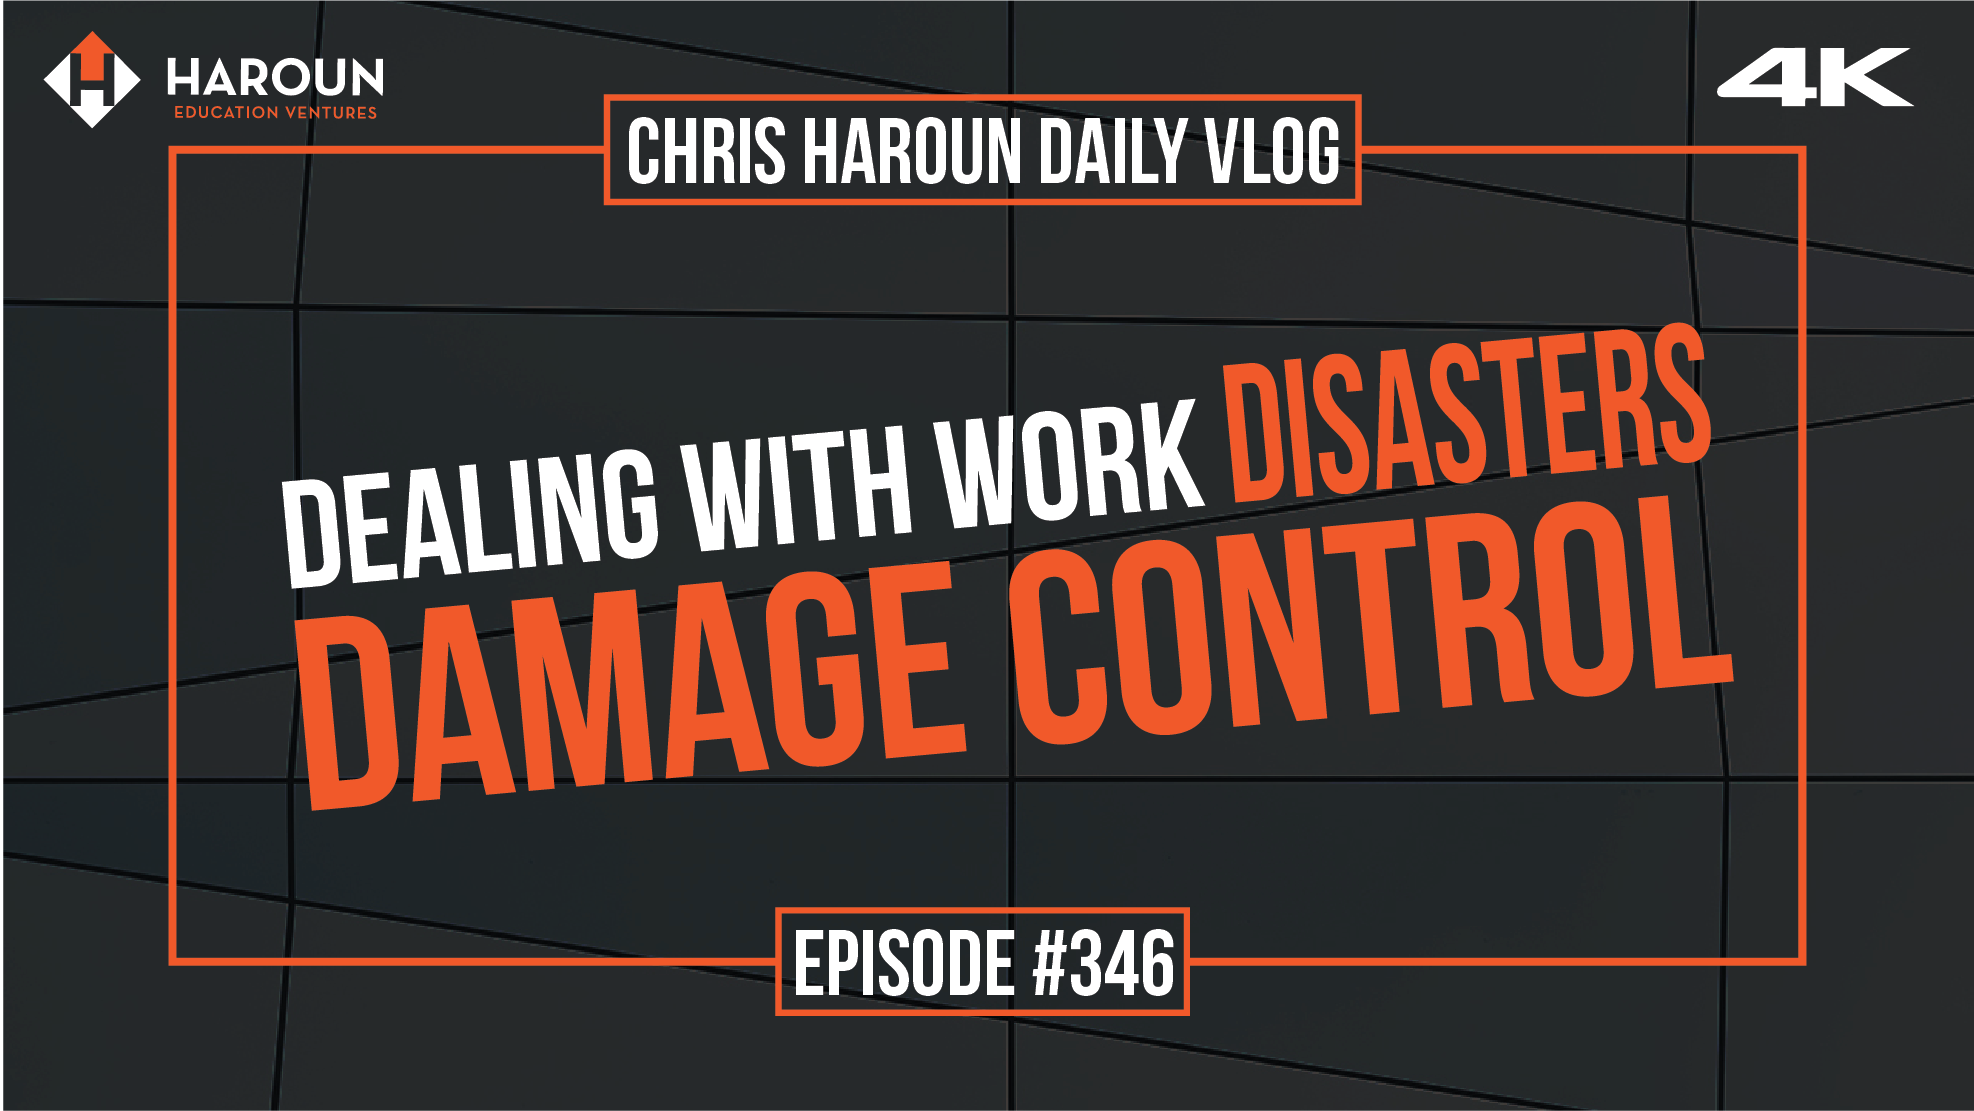 VLOG_346_7_12_2019_Dealing with Work Disasters:Damage Control.png